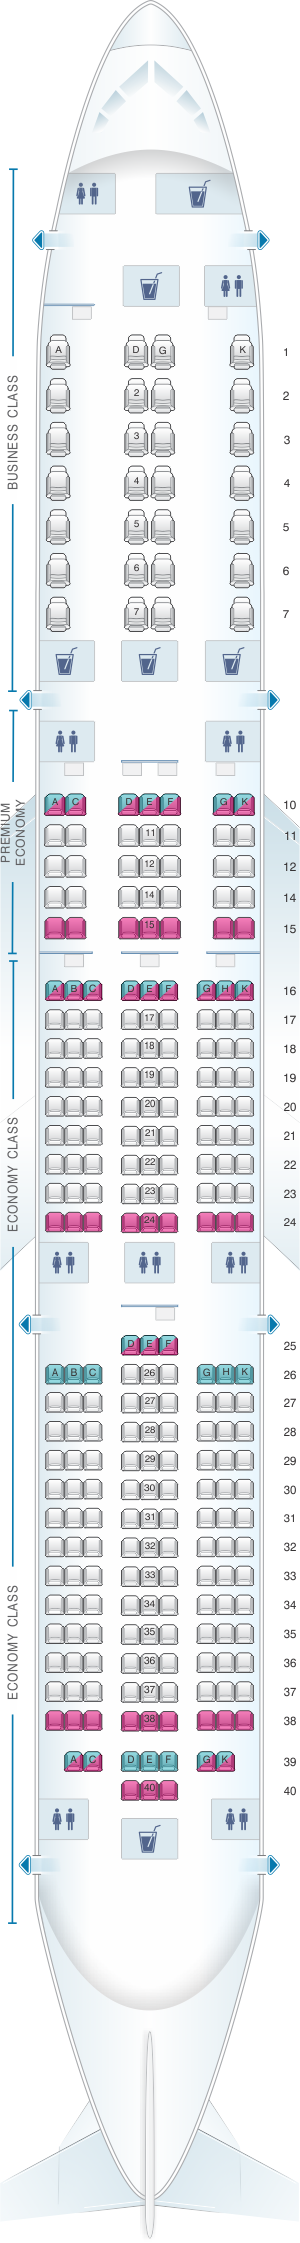 Seat map for Vietnam Airlines Boeing B787-9 V1